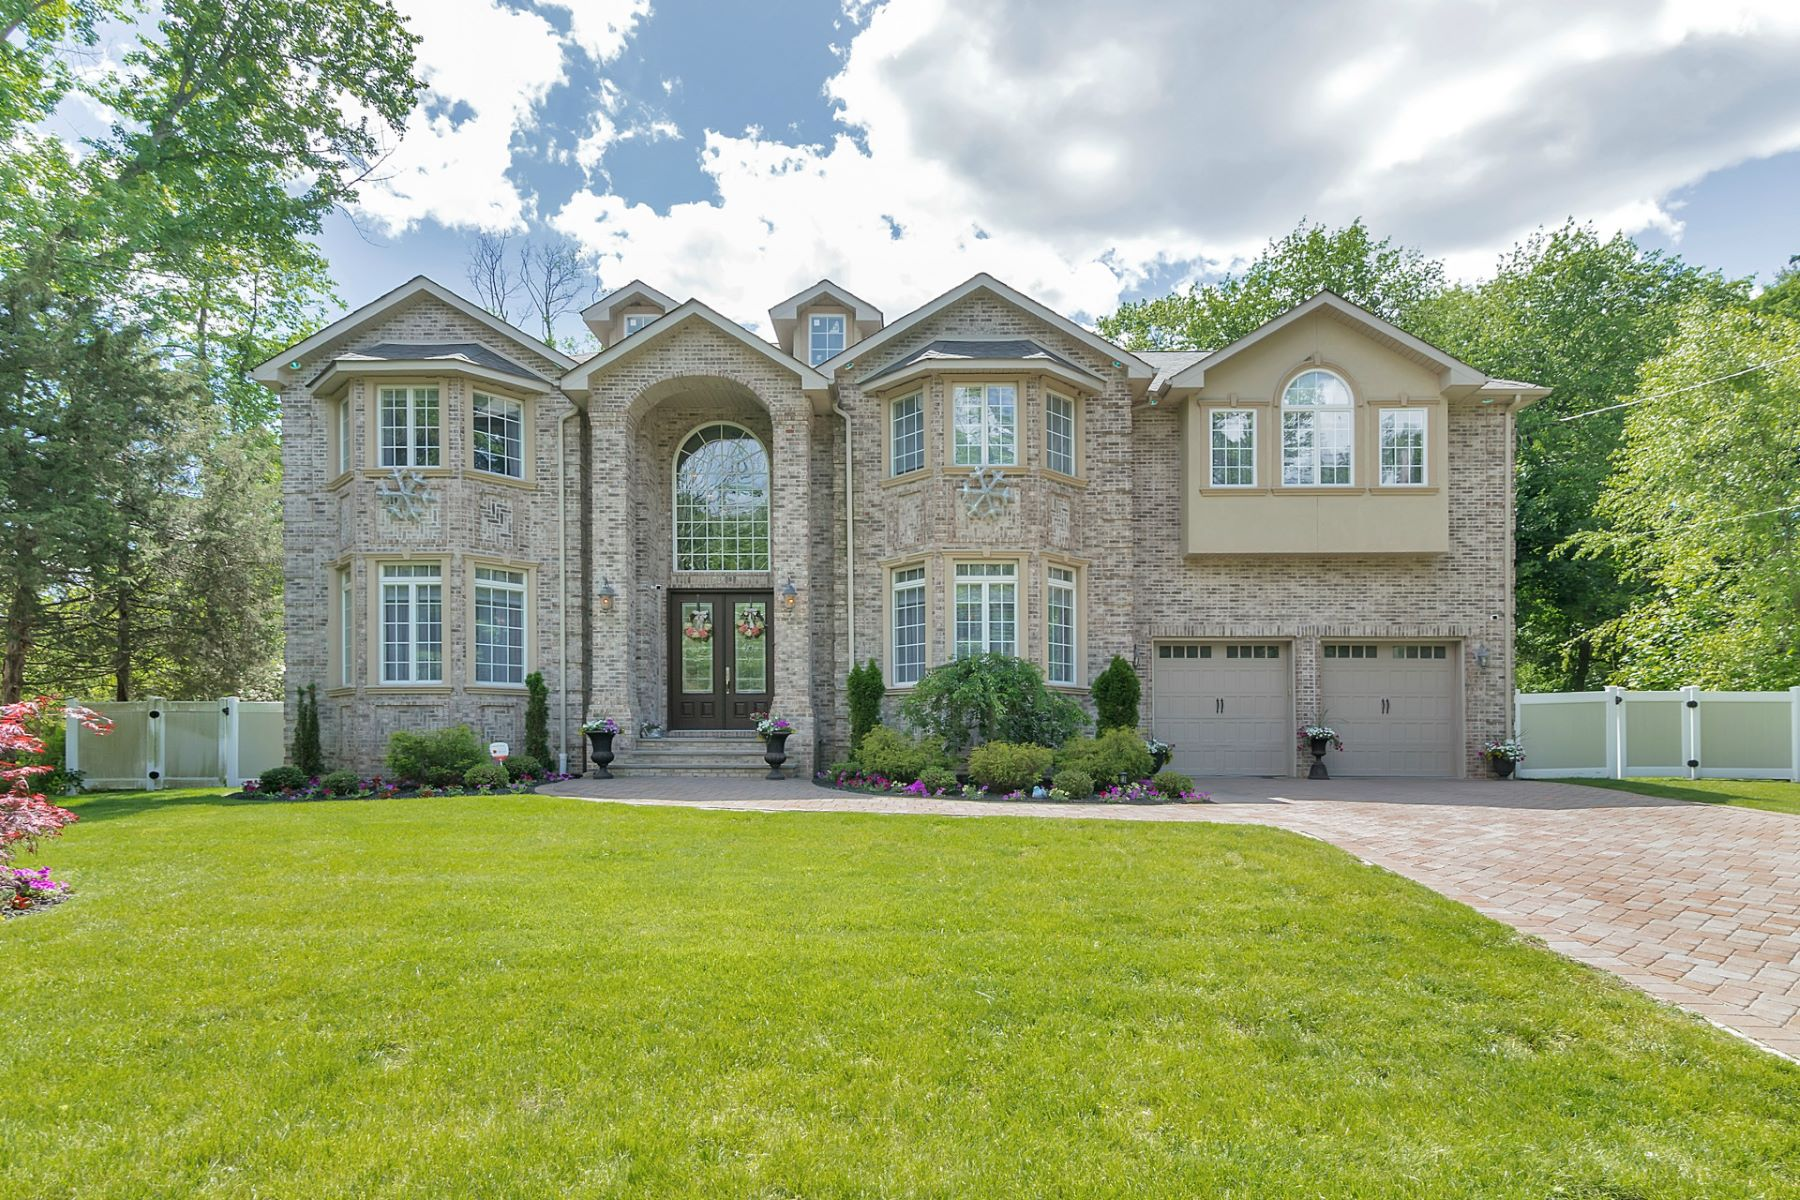 Single Family Home for Sale at Custom Built Colonial 78 Highland Avenue, Harrington Park, New Jersey 07640 United States